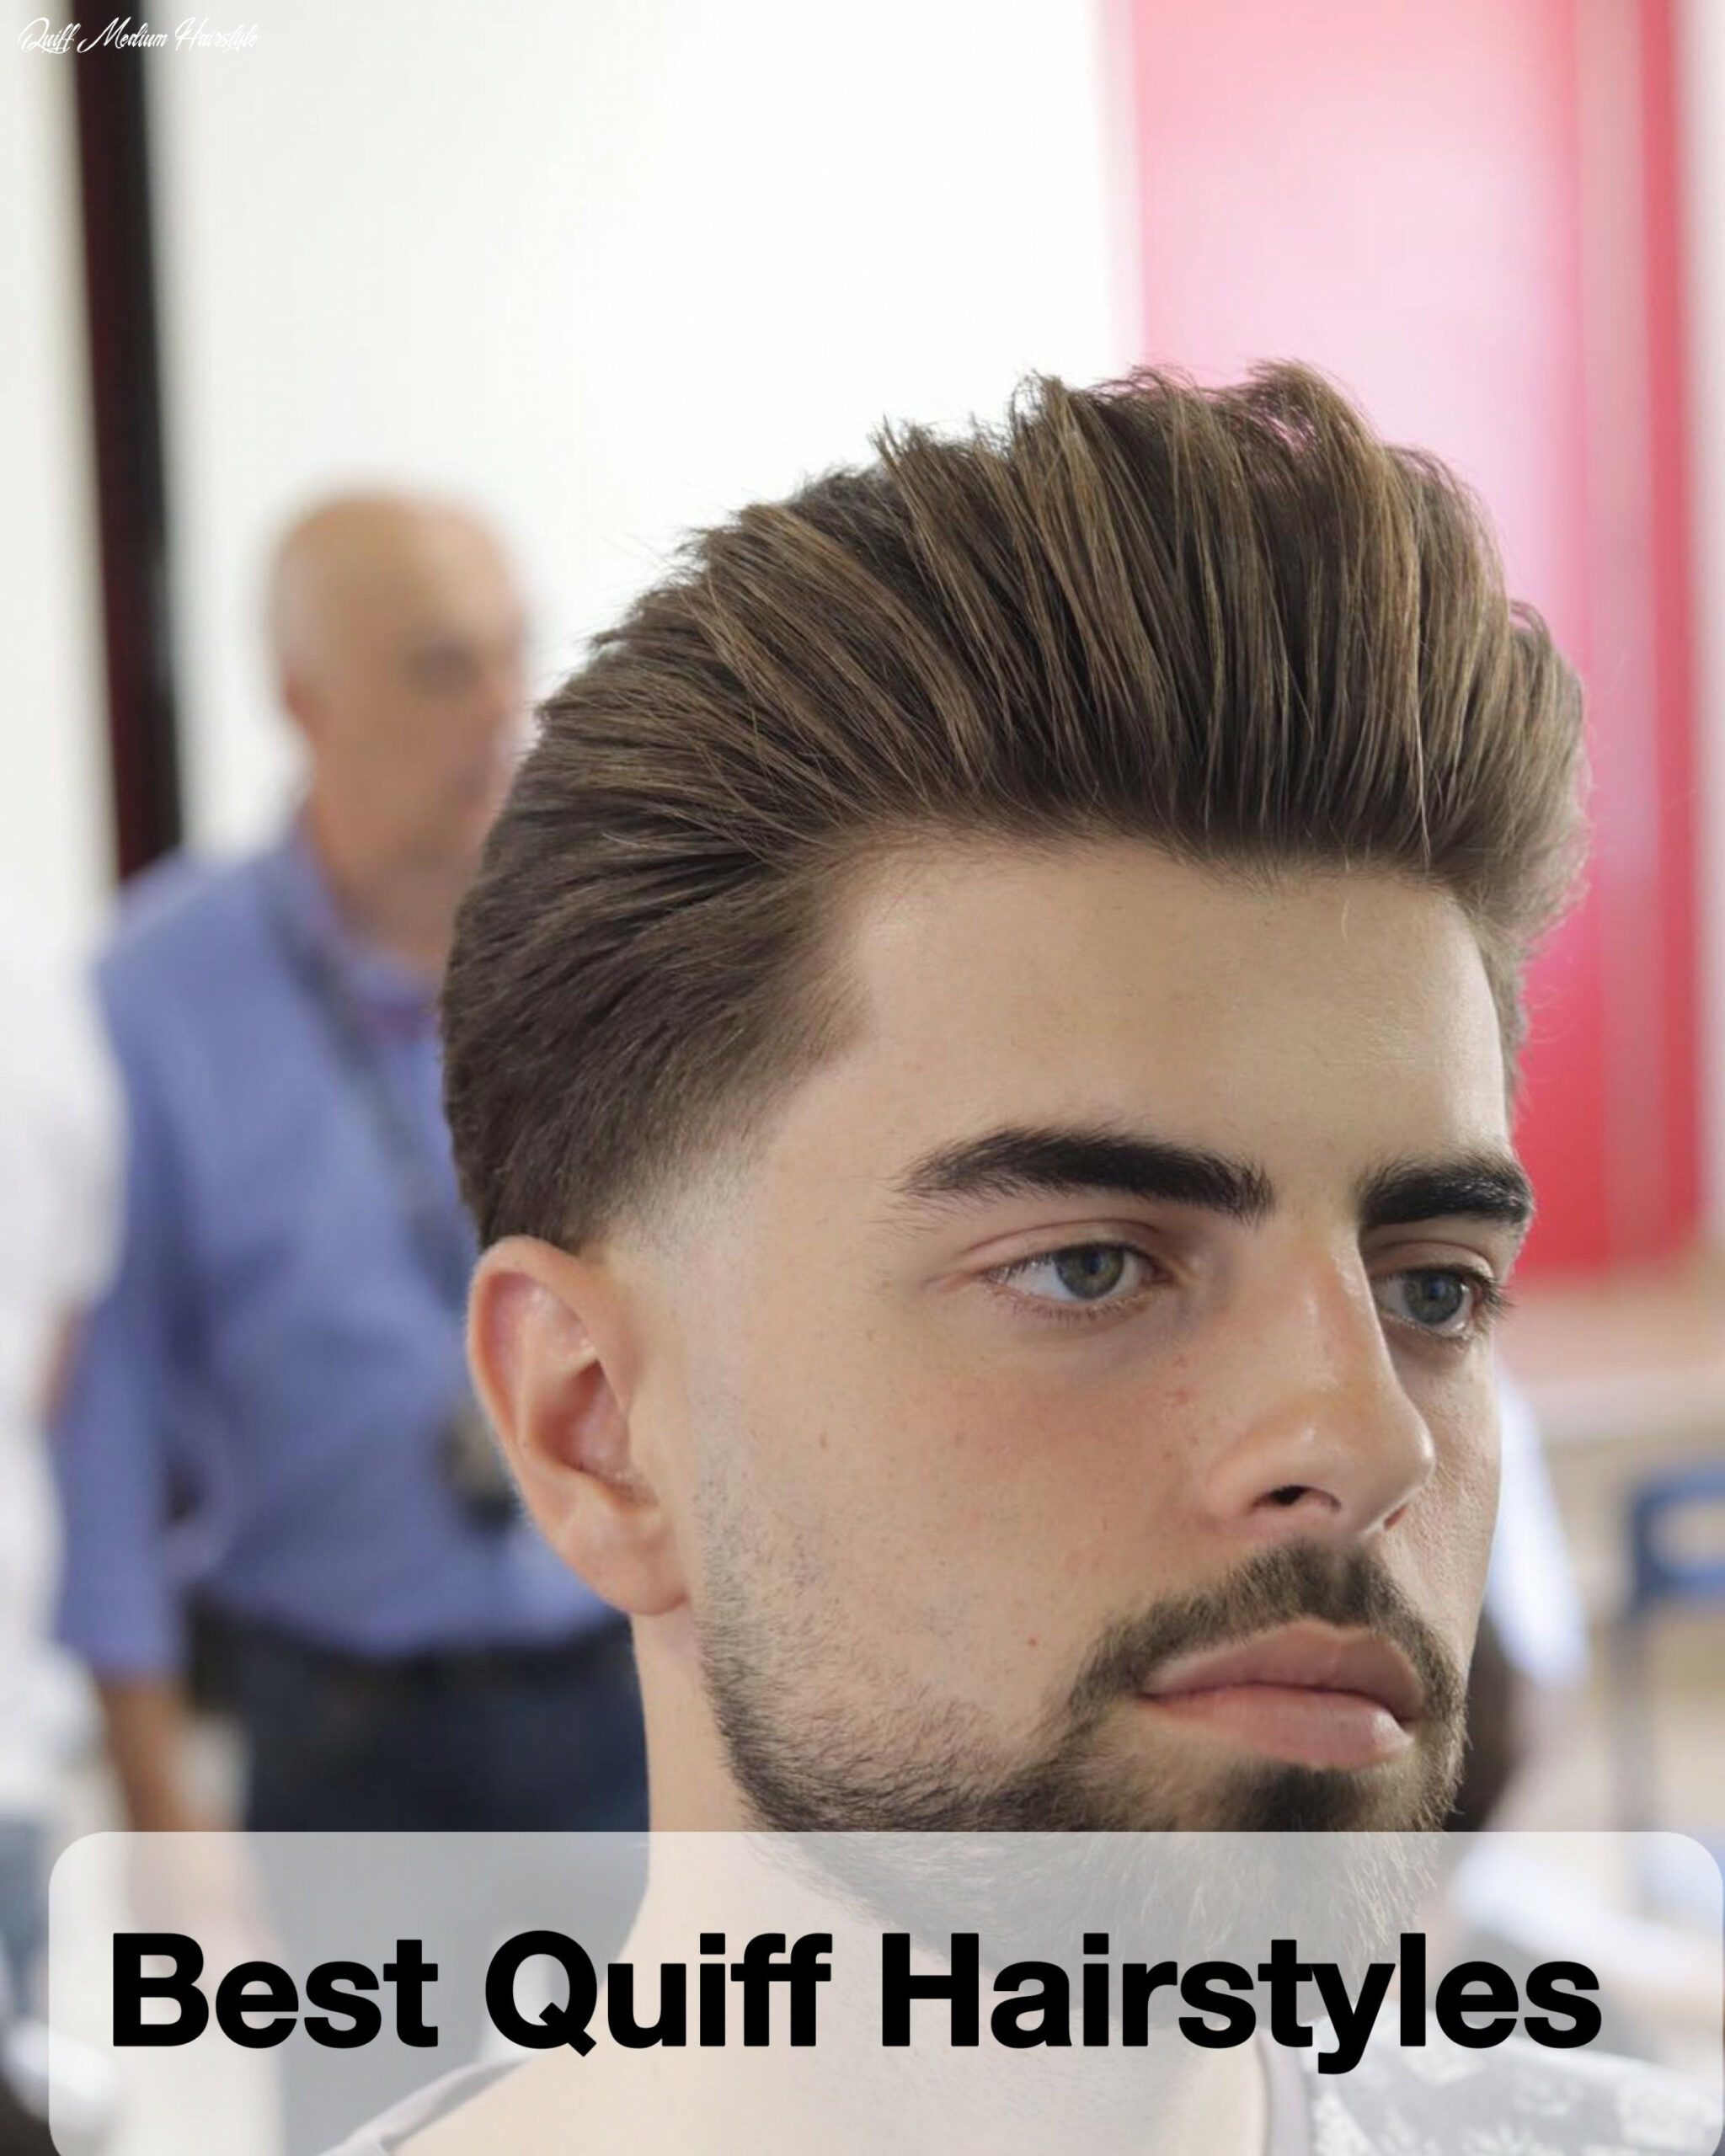 9 quiff hairstyles we absolutely love | mens hairstyles medium